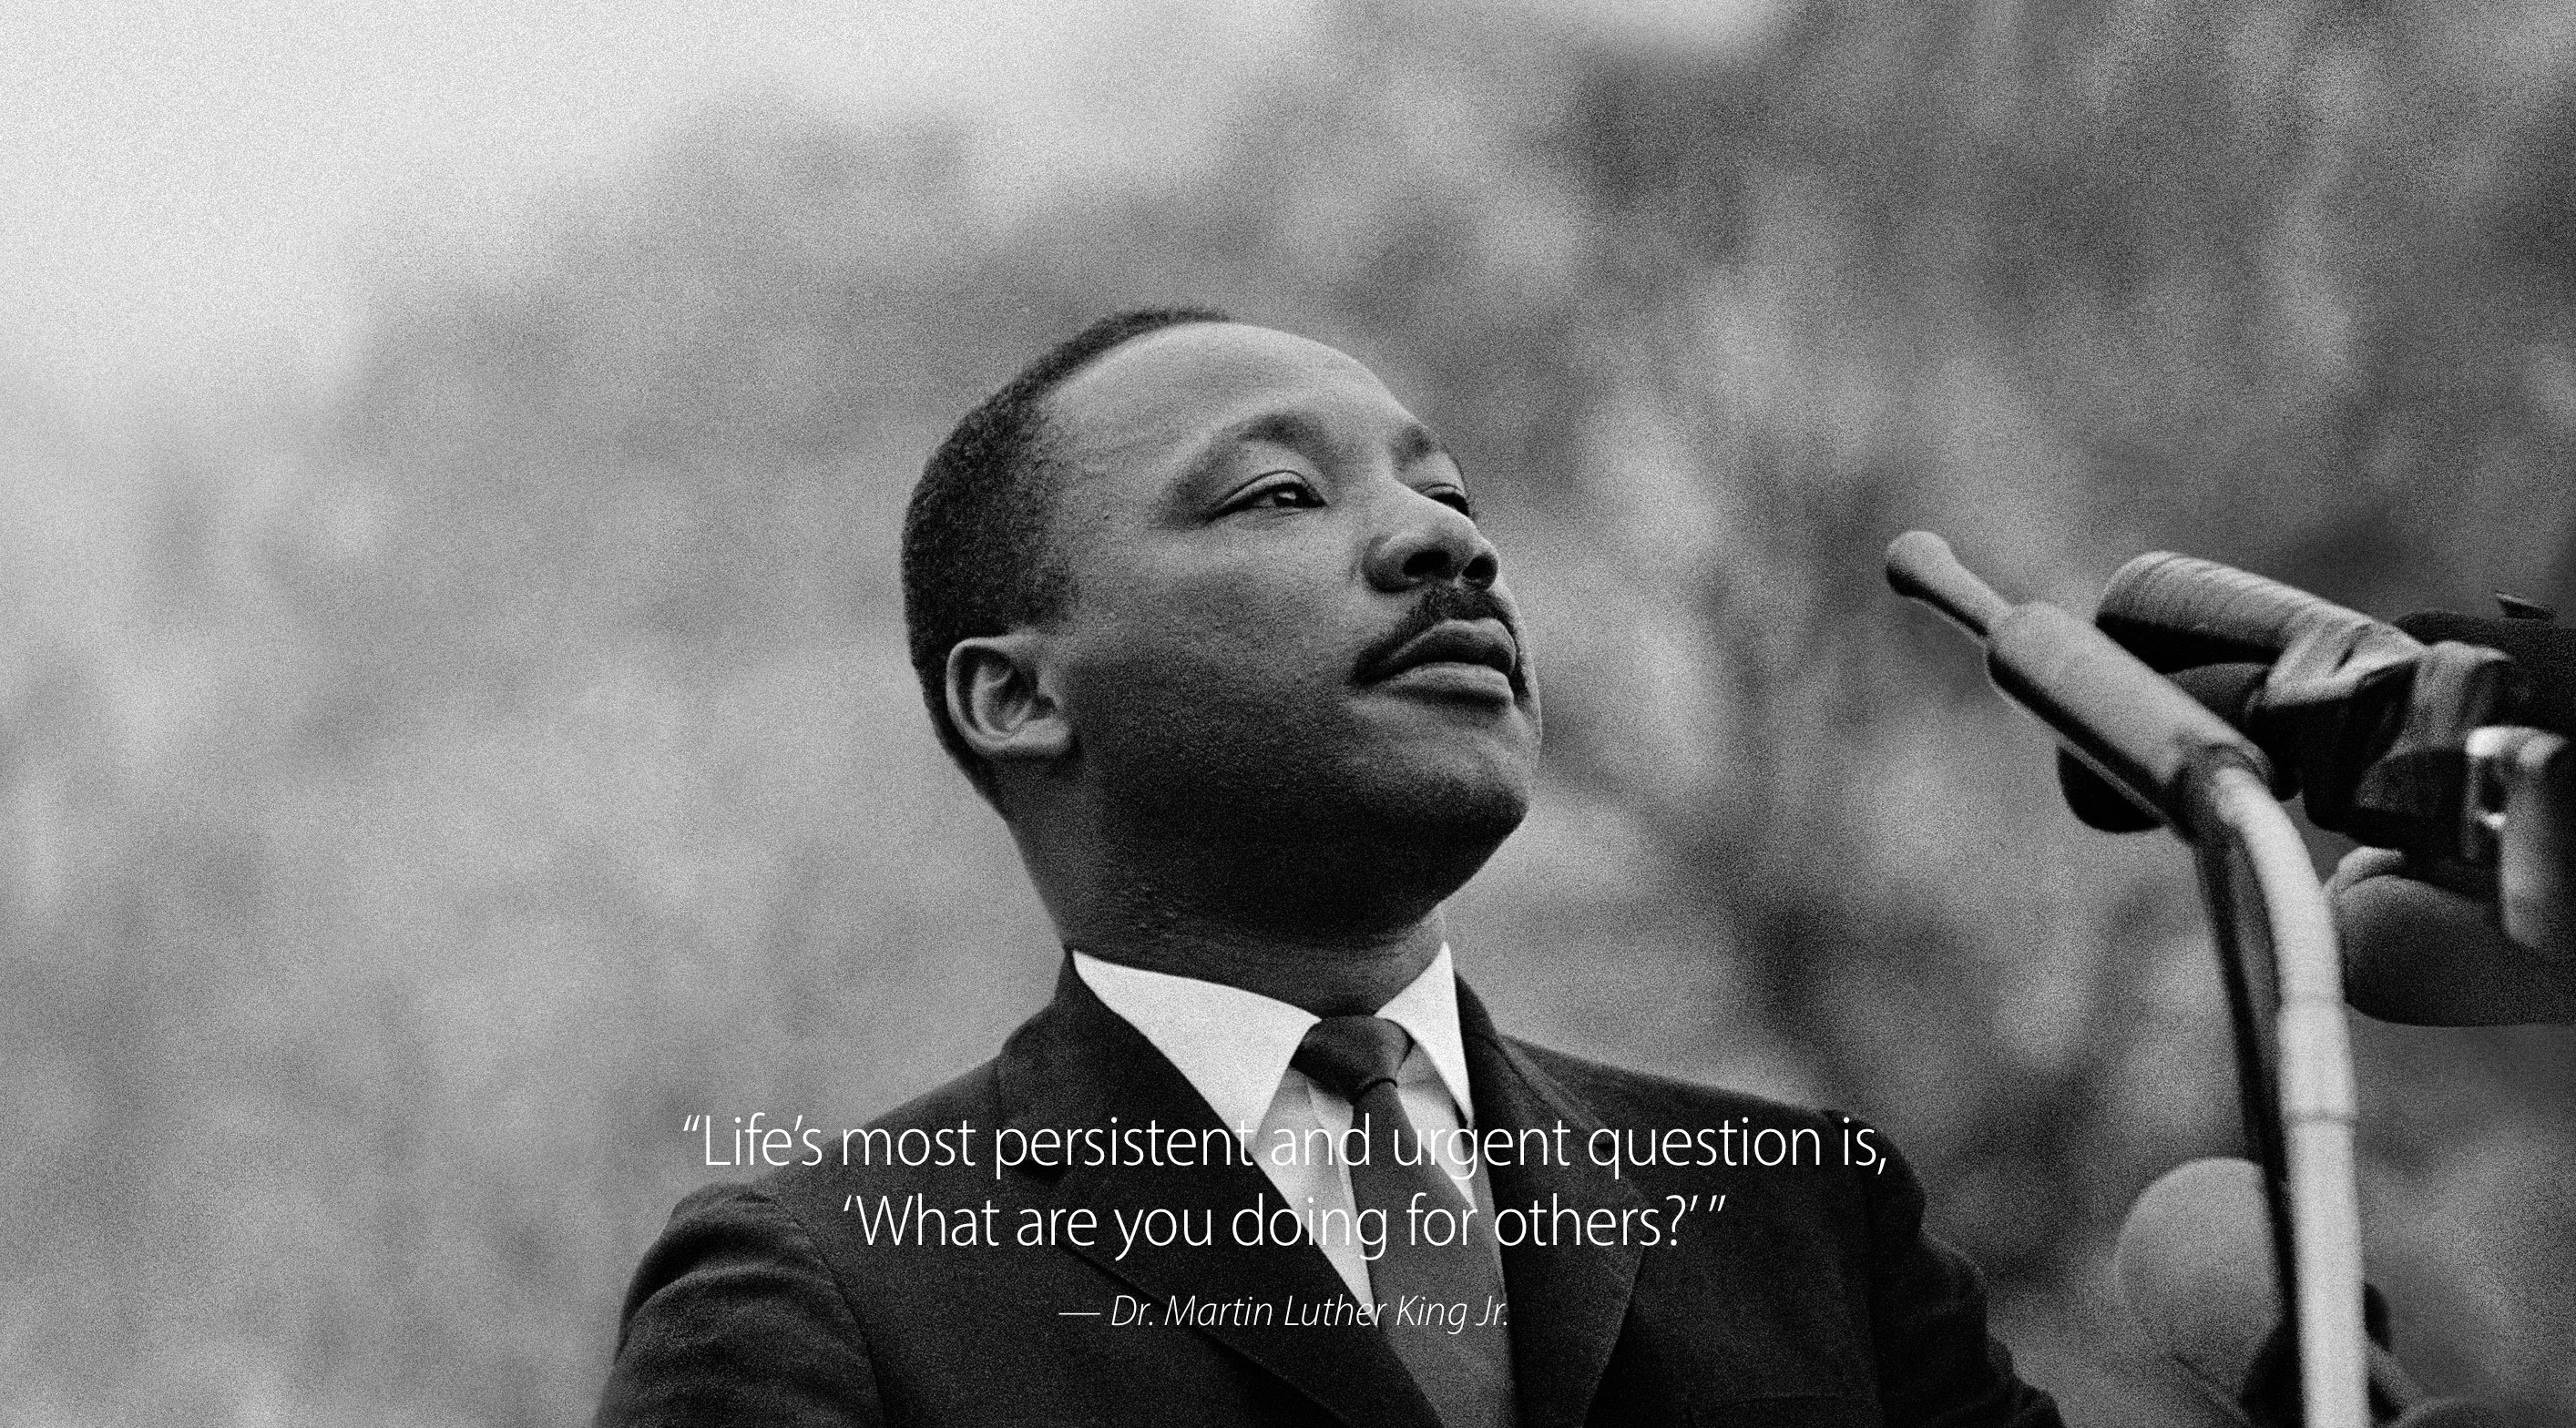 Get An Inspirational Martin Luther King Jr Quote Wallpaper From Apple